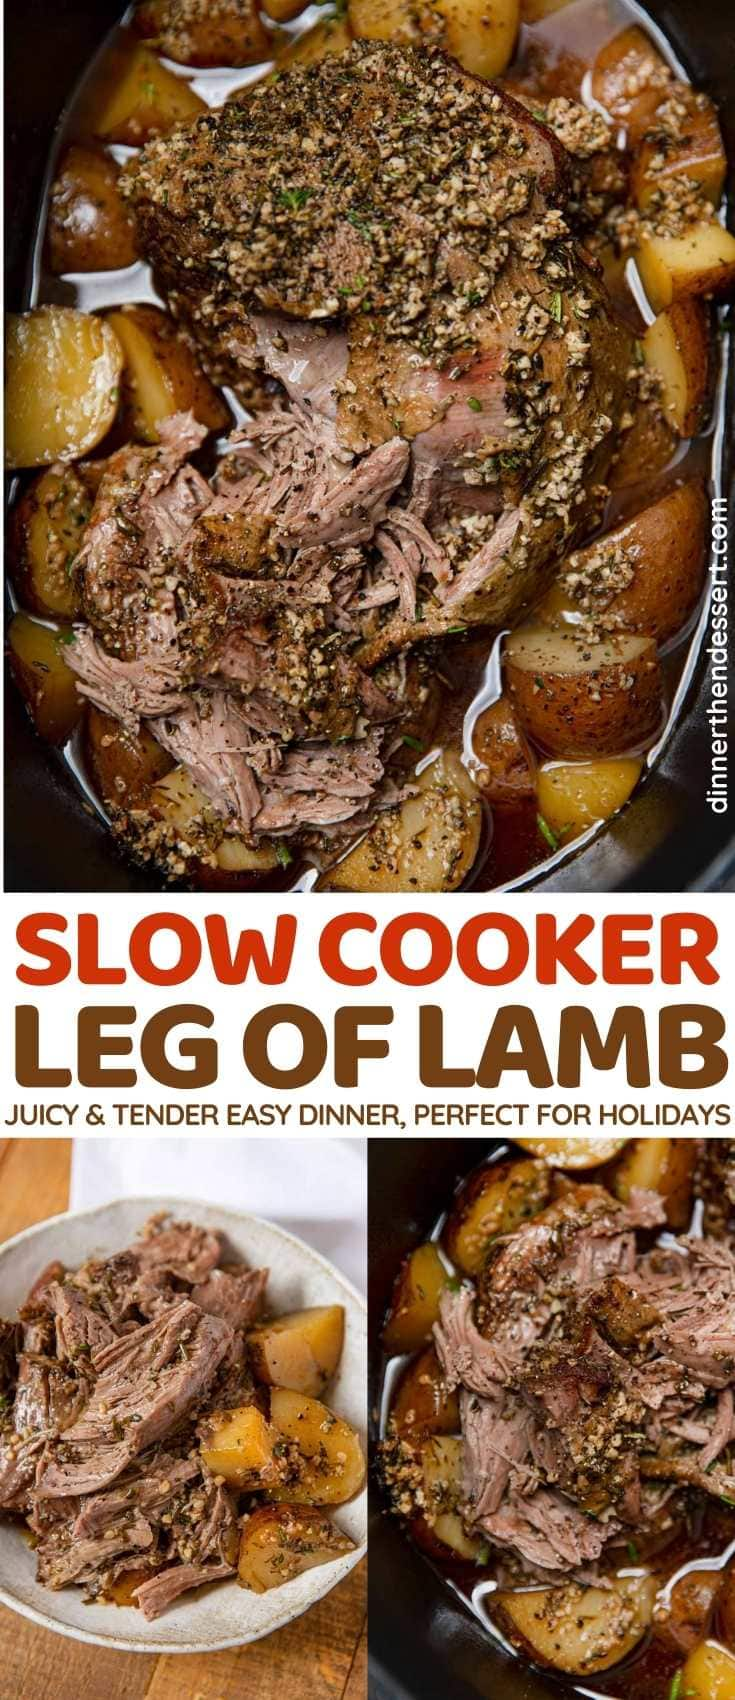 Slow Cooker Leg of Lamb collage